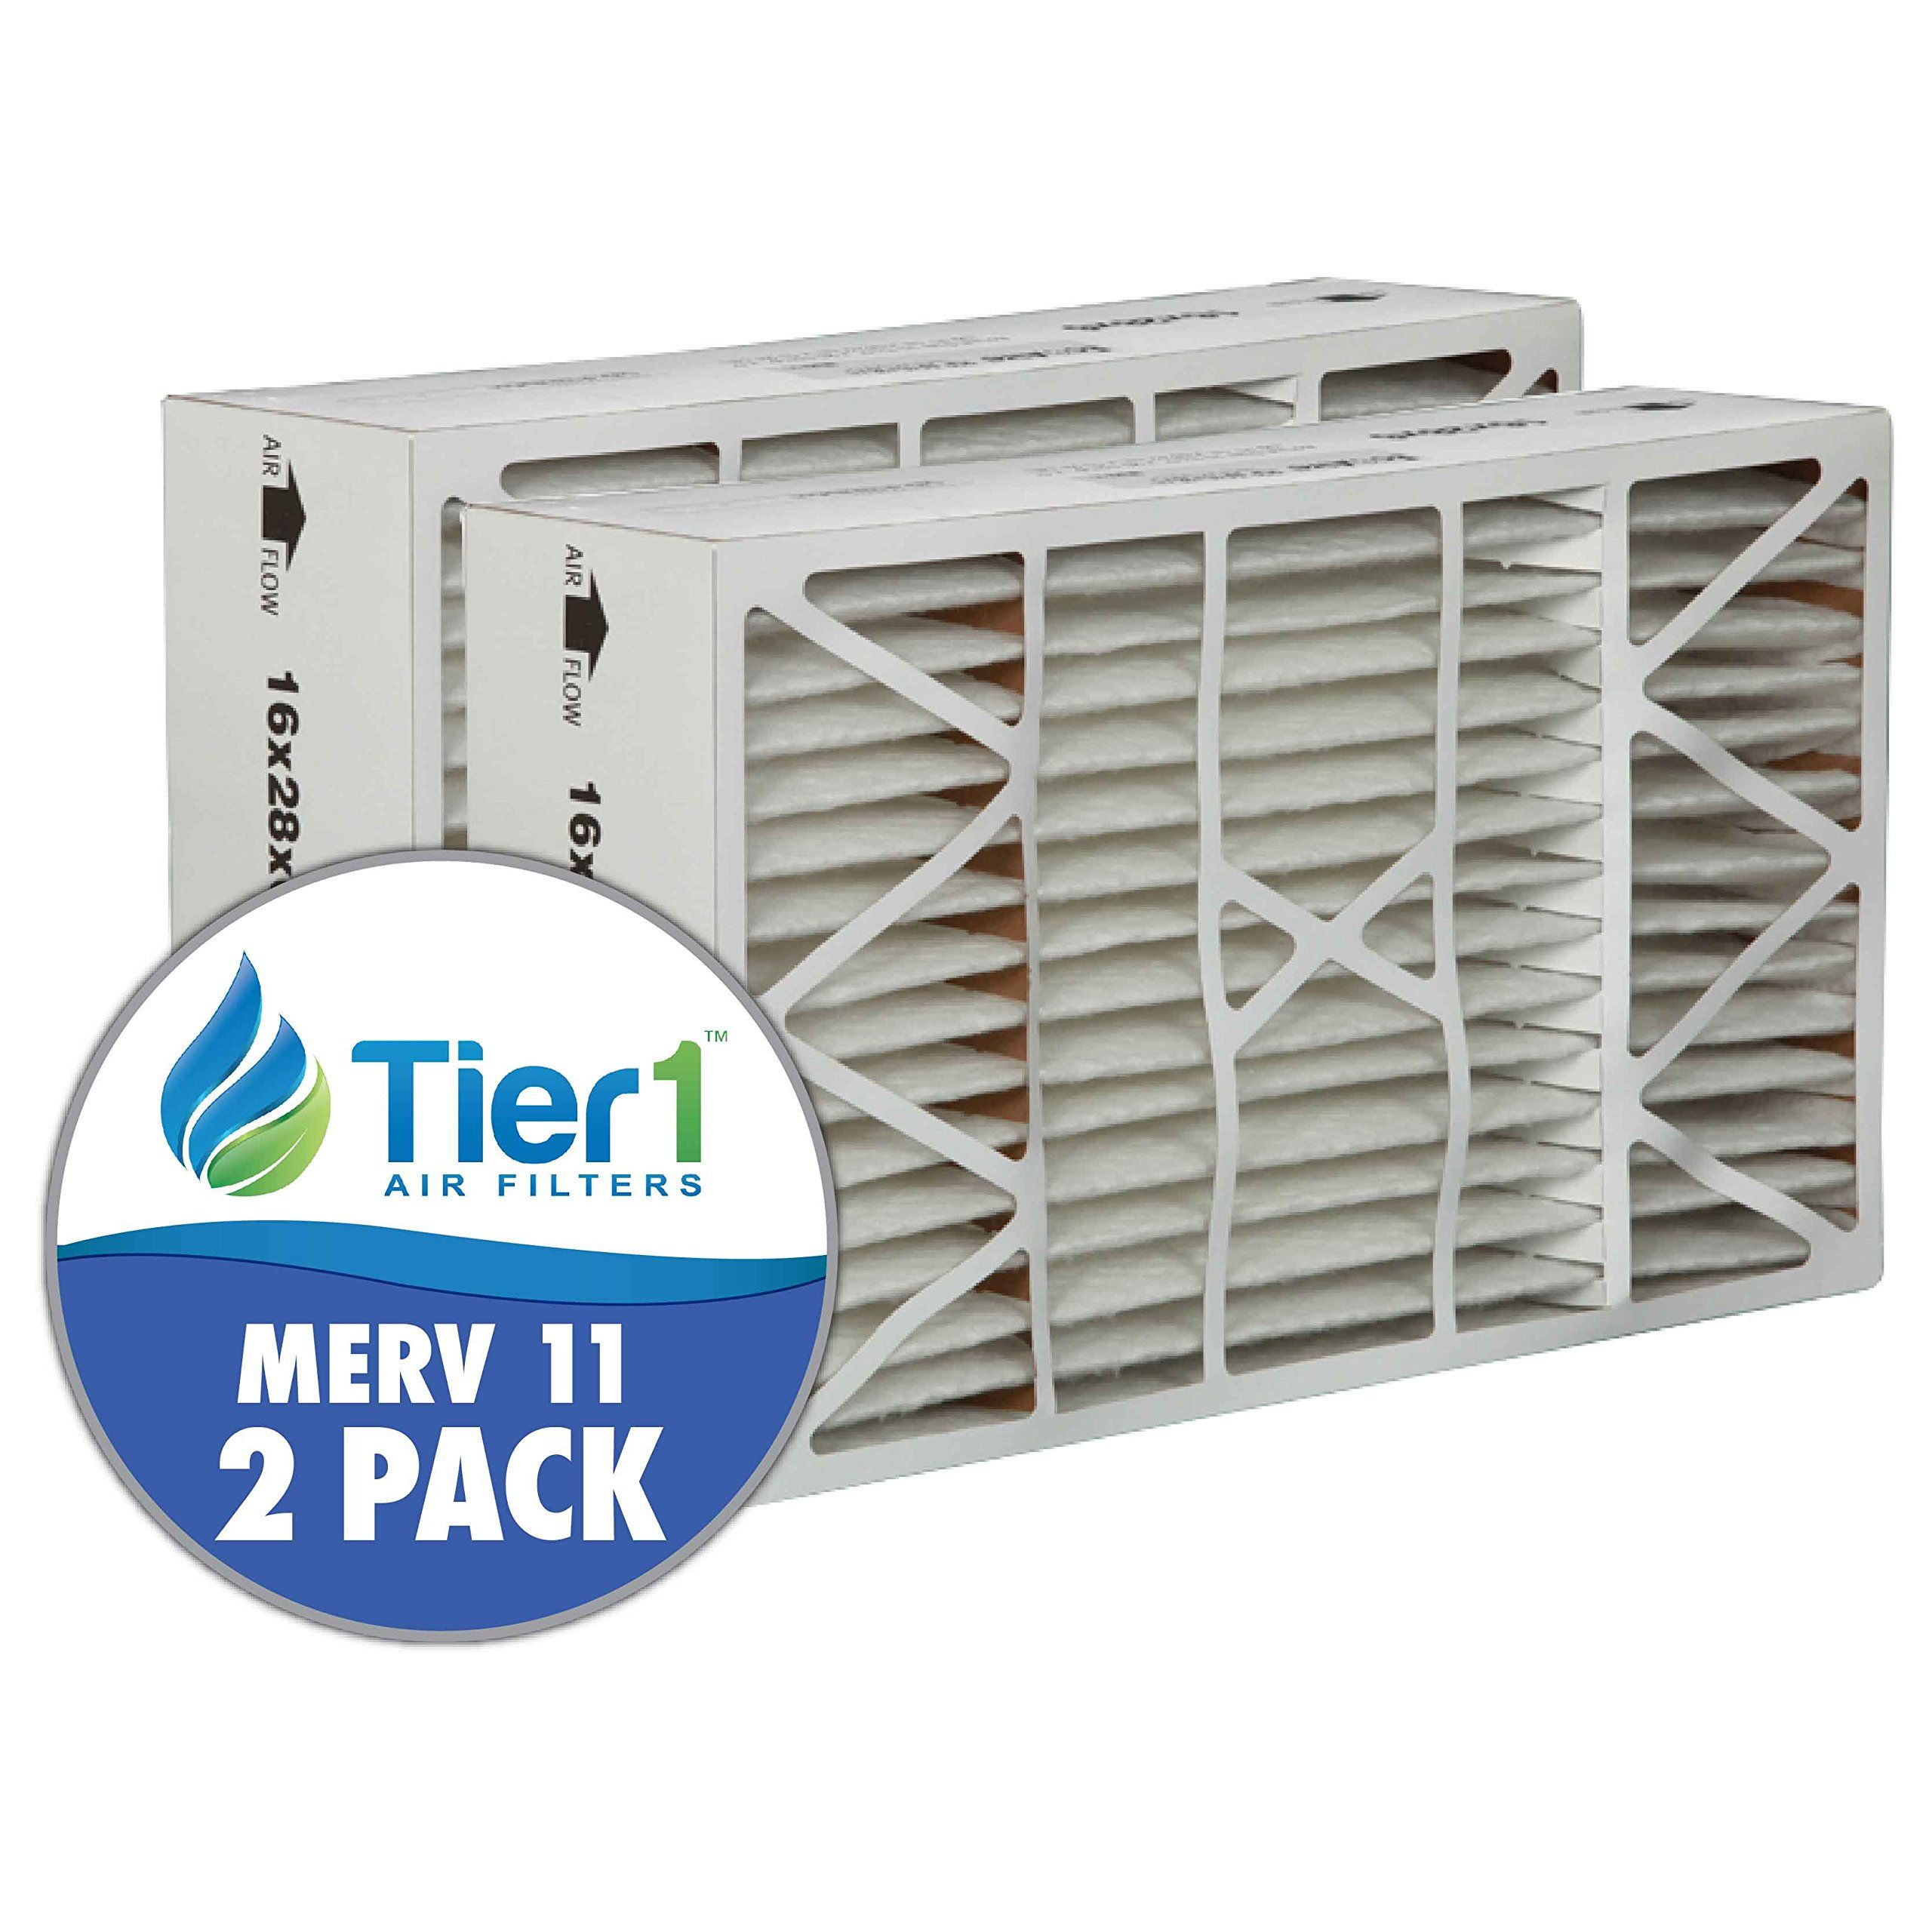 Lennox X5425 16x28x6 MERV 11 Comparable Air Filter 2PK